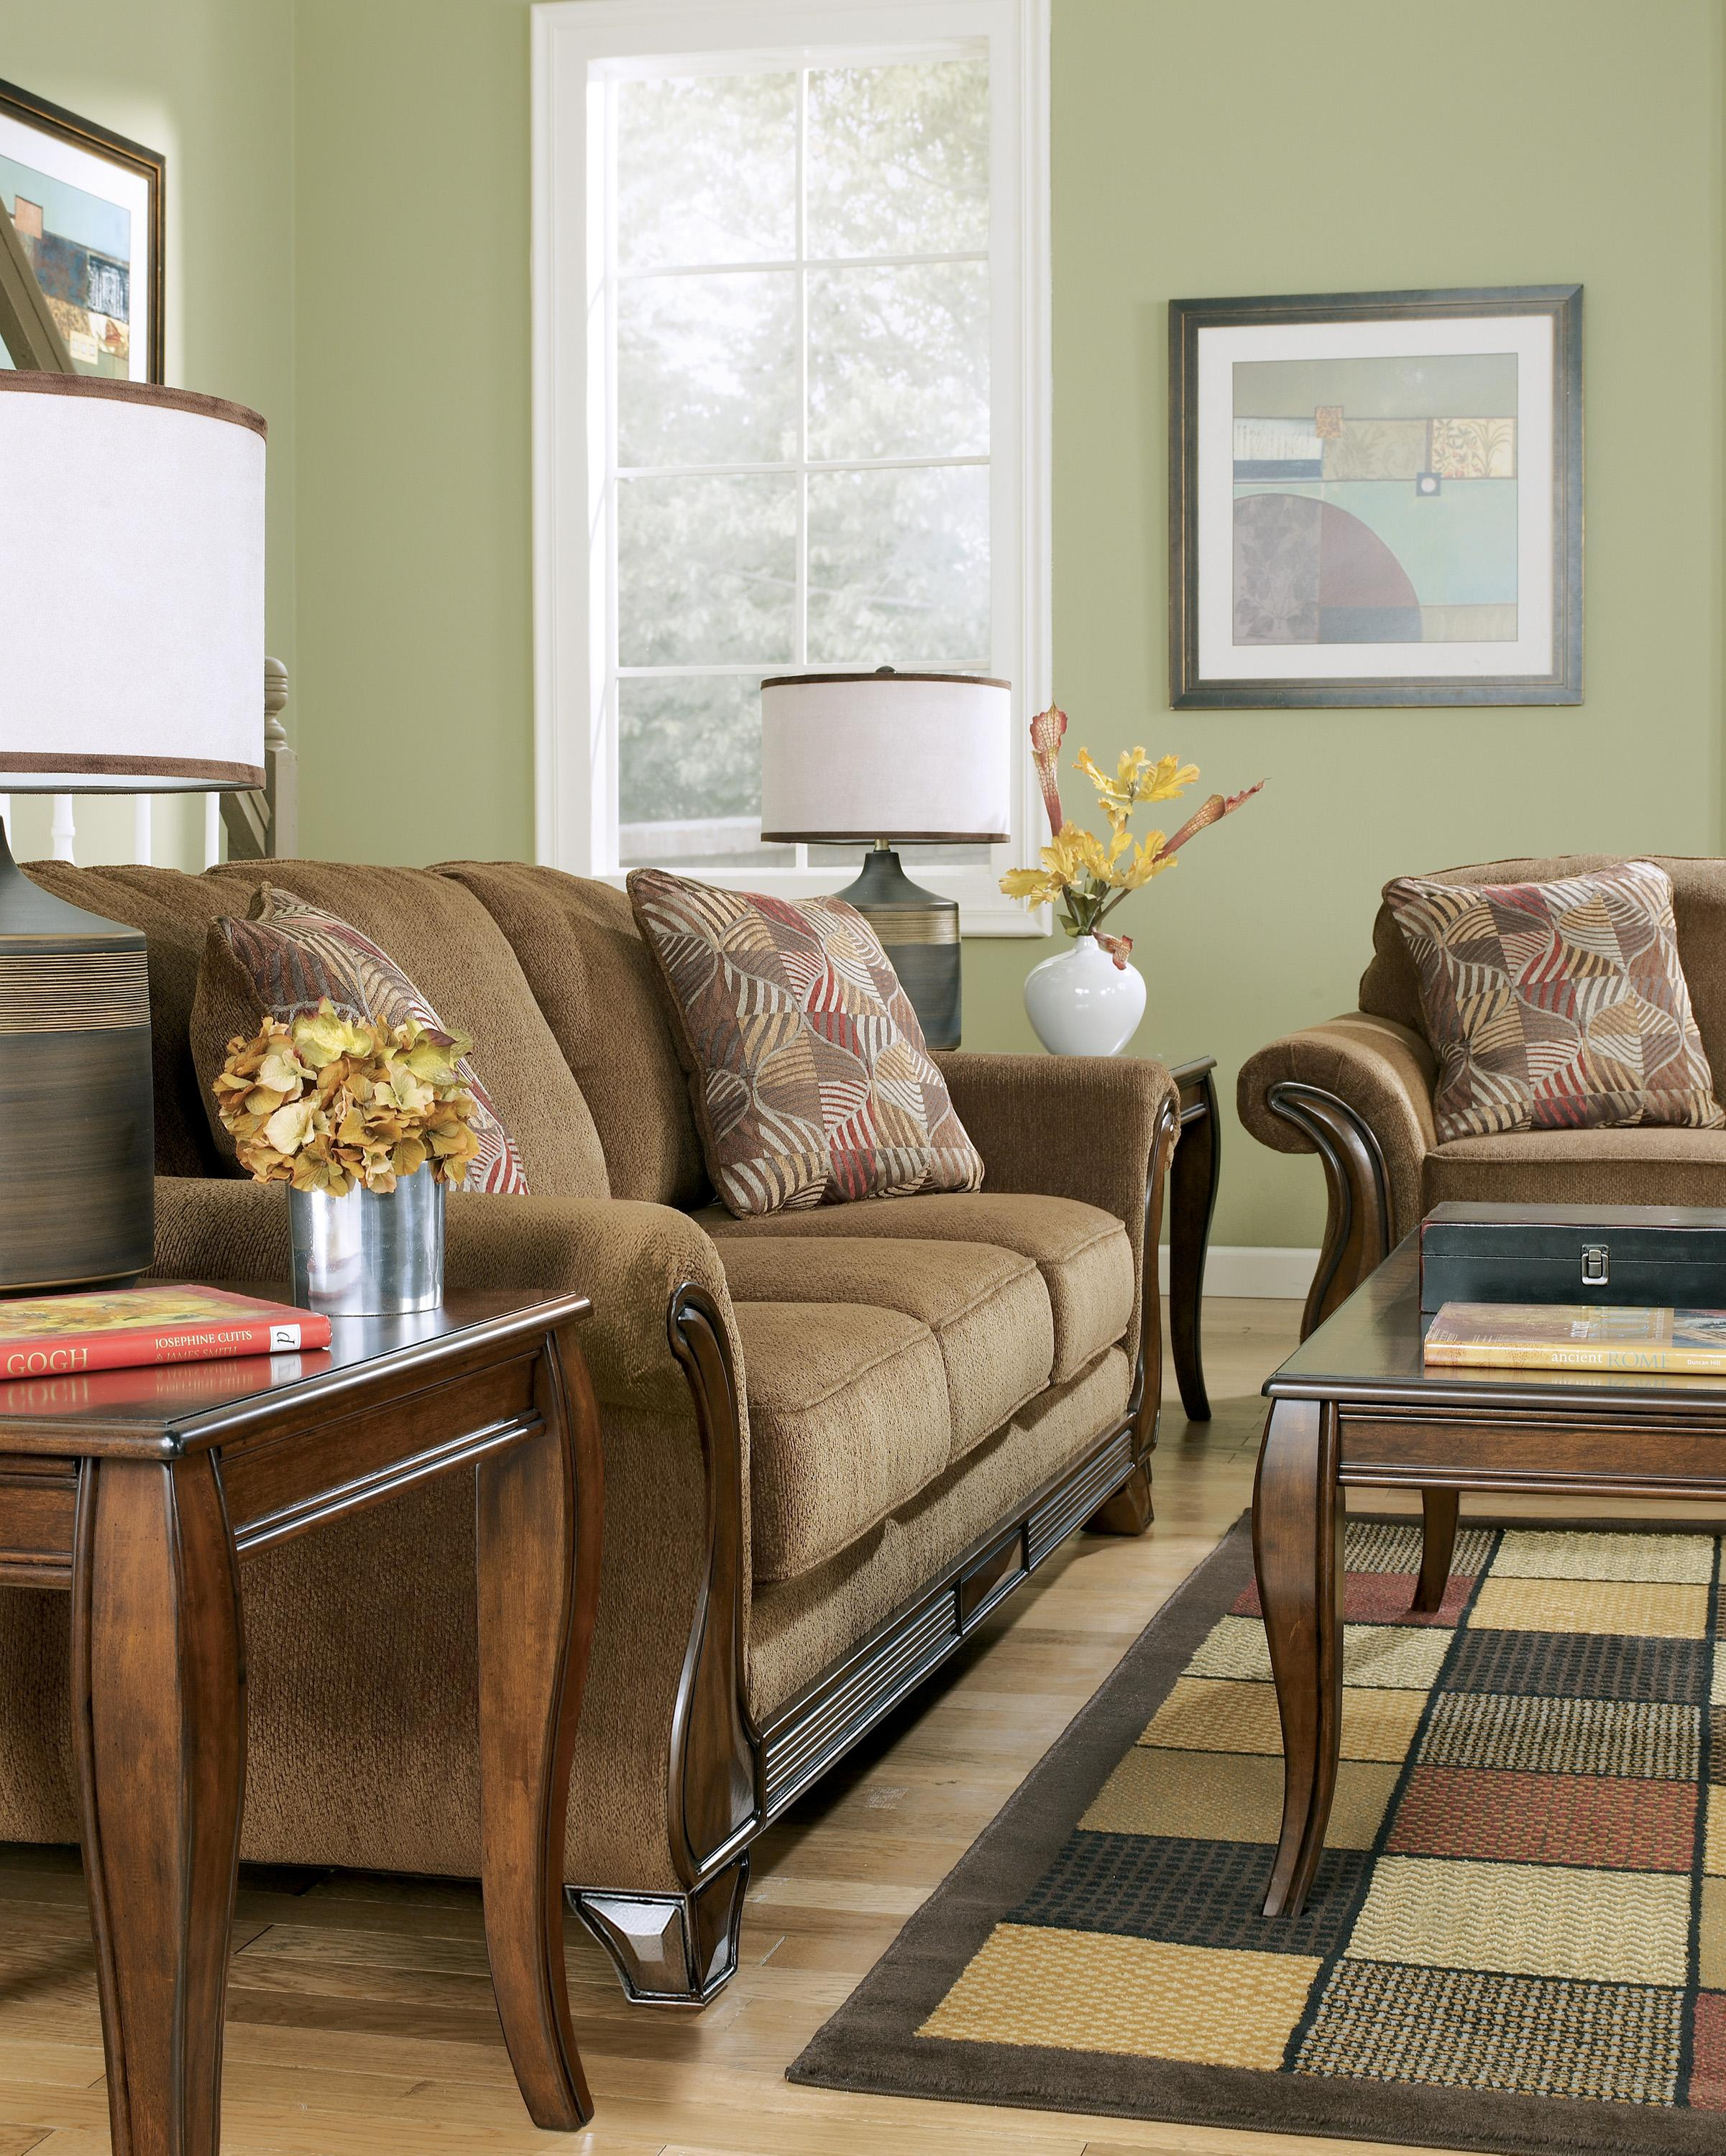 Signature Design By Ashley Montgomery Mocha Queen Sofa Sleeper With Flared Arms Exposed Faux